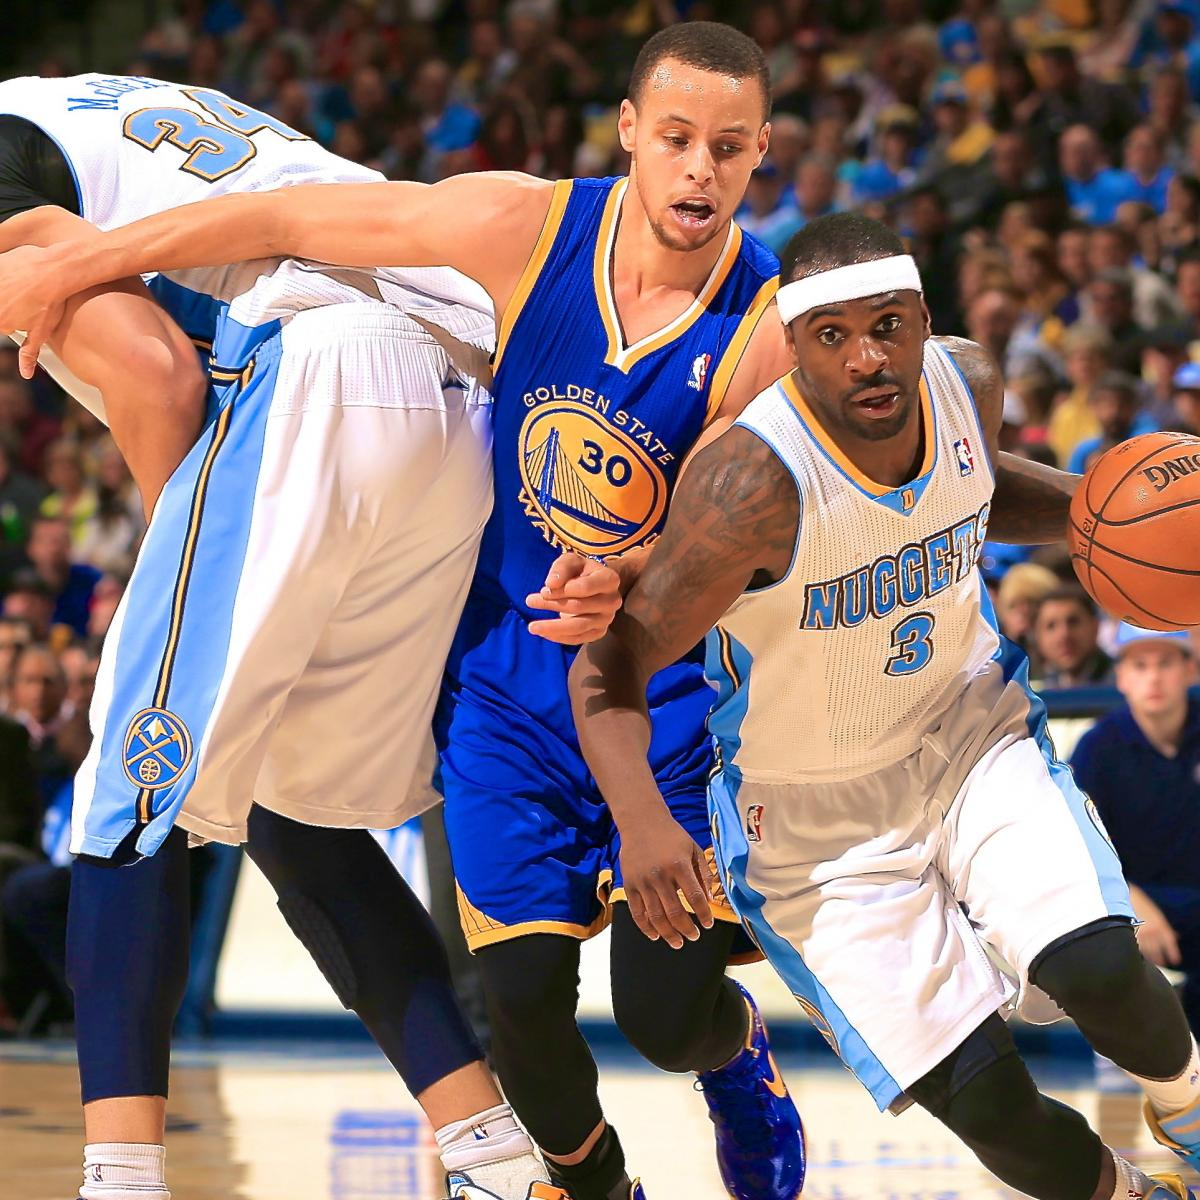 Golden State Warriors Vs. Denver Nuggets: Game 5 Score